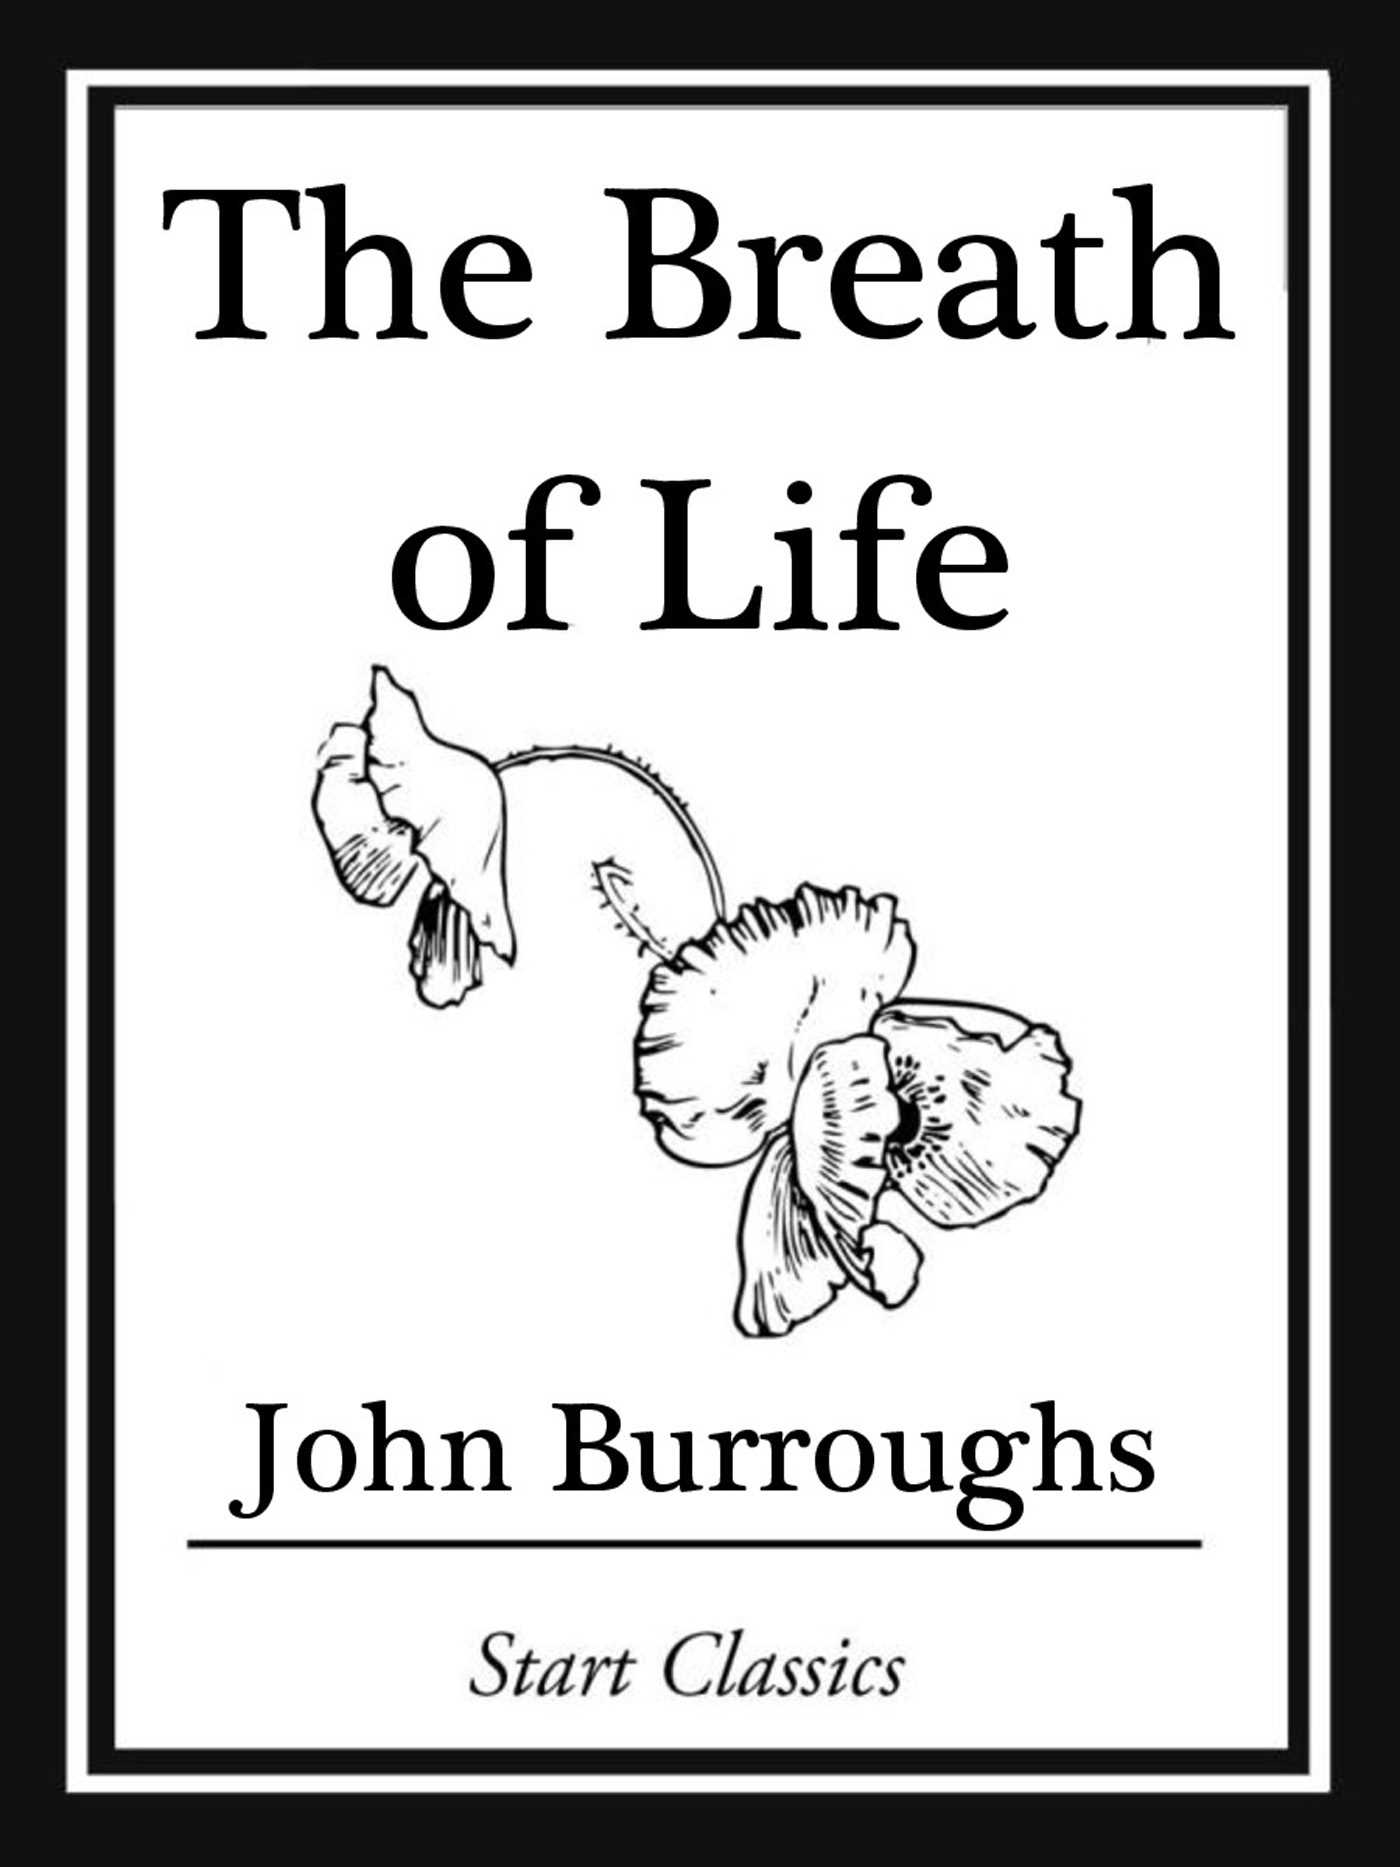 The breath of life 9781627936521 hr